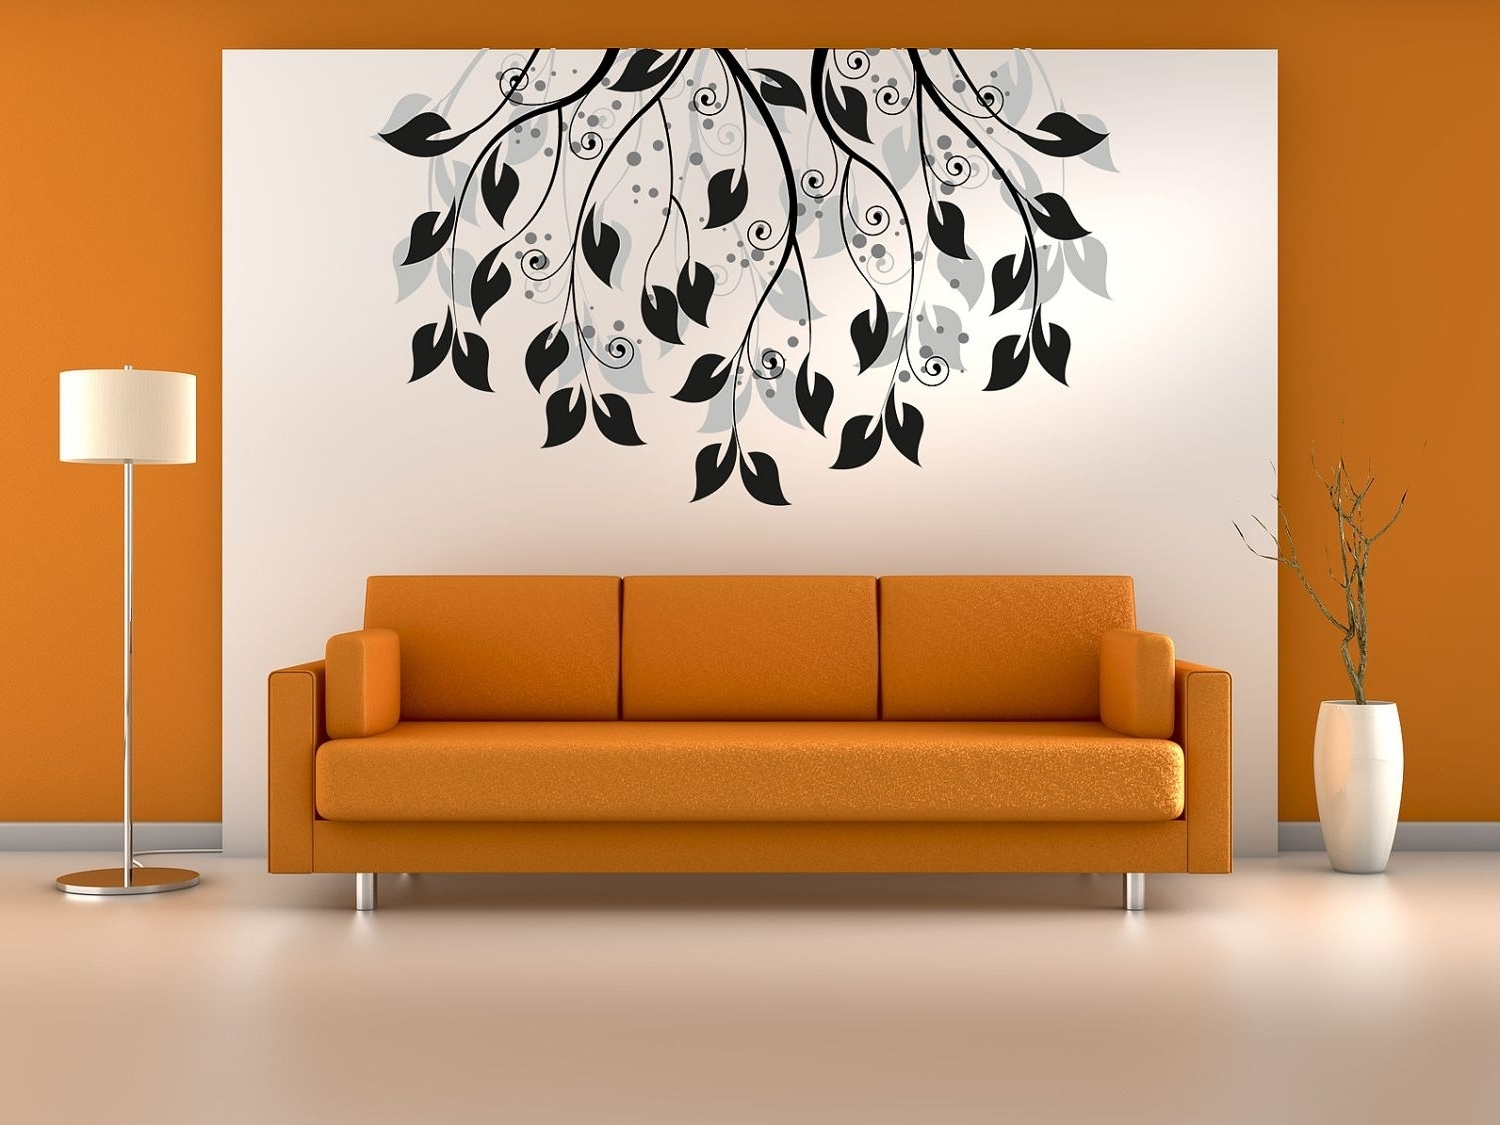 Wall Arts For Living Room With Popular Wall Art Designs: Living Room Wall Art Wall Art For Living Room (View 5 of 15)